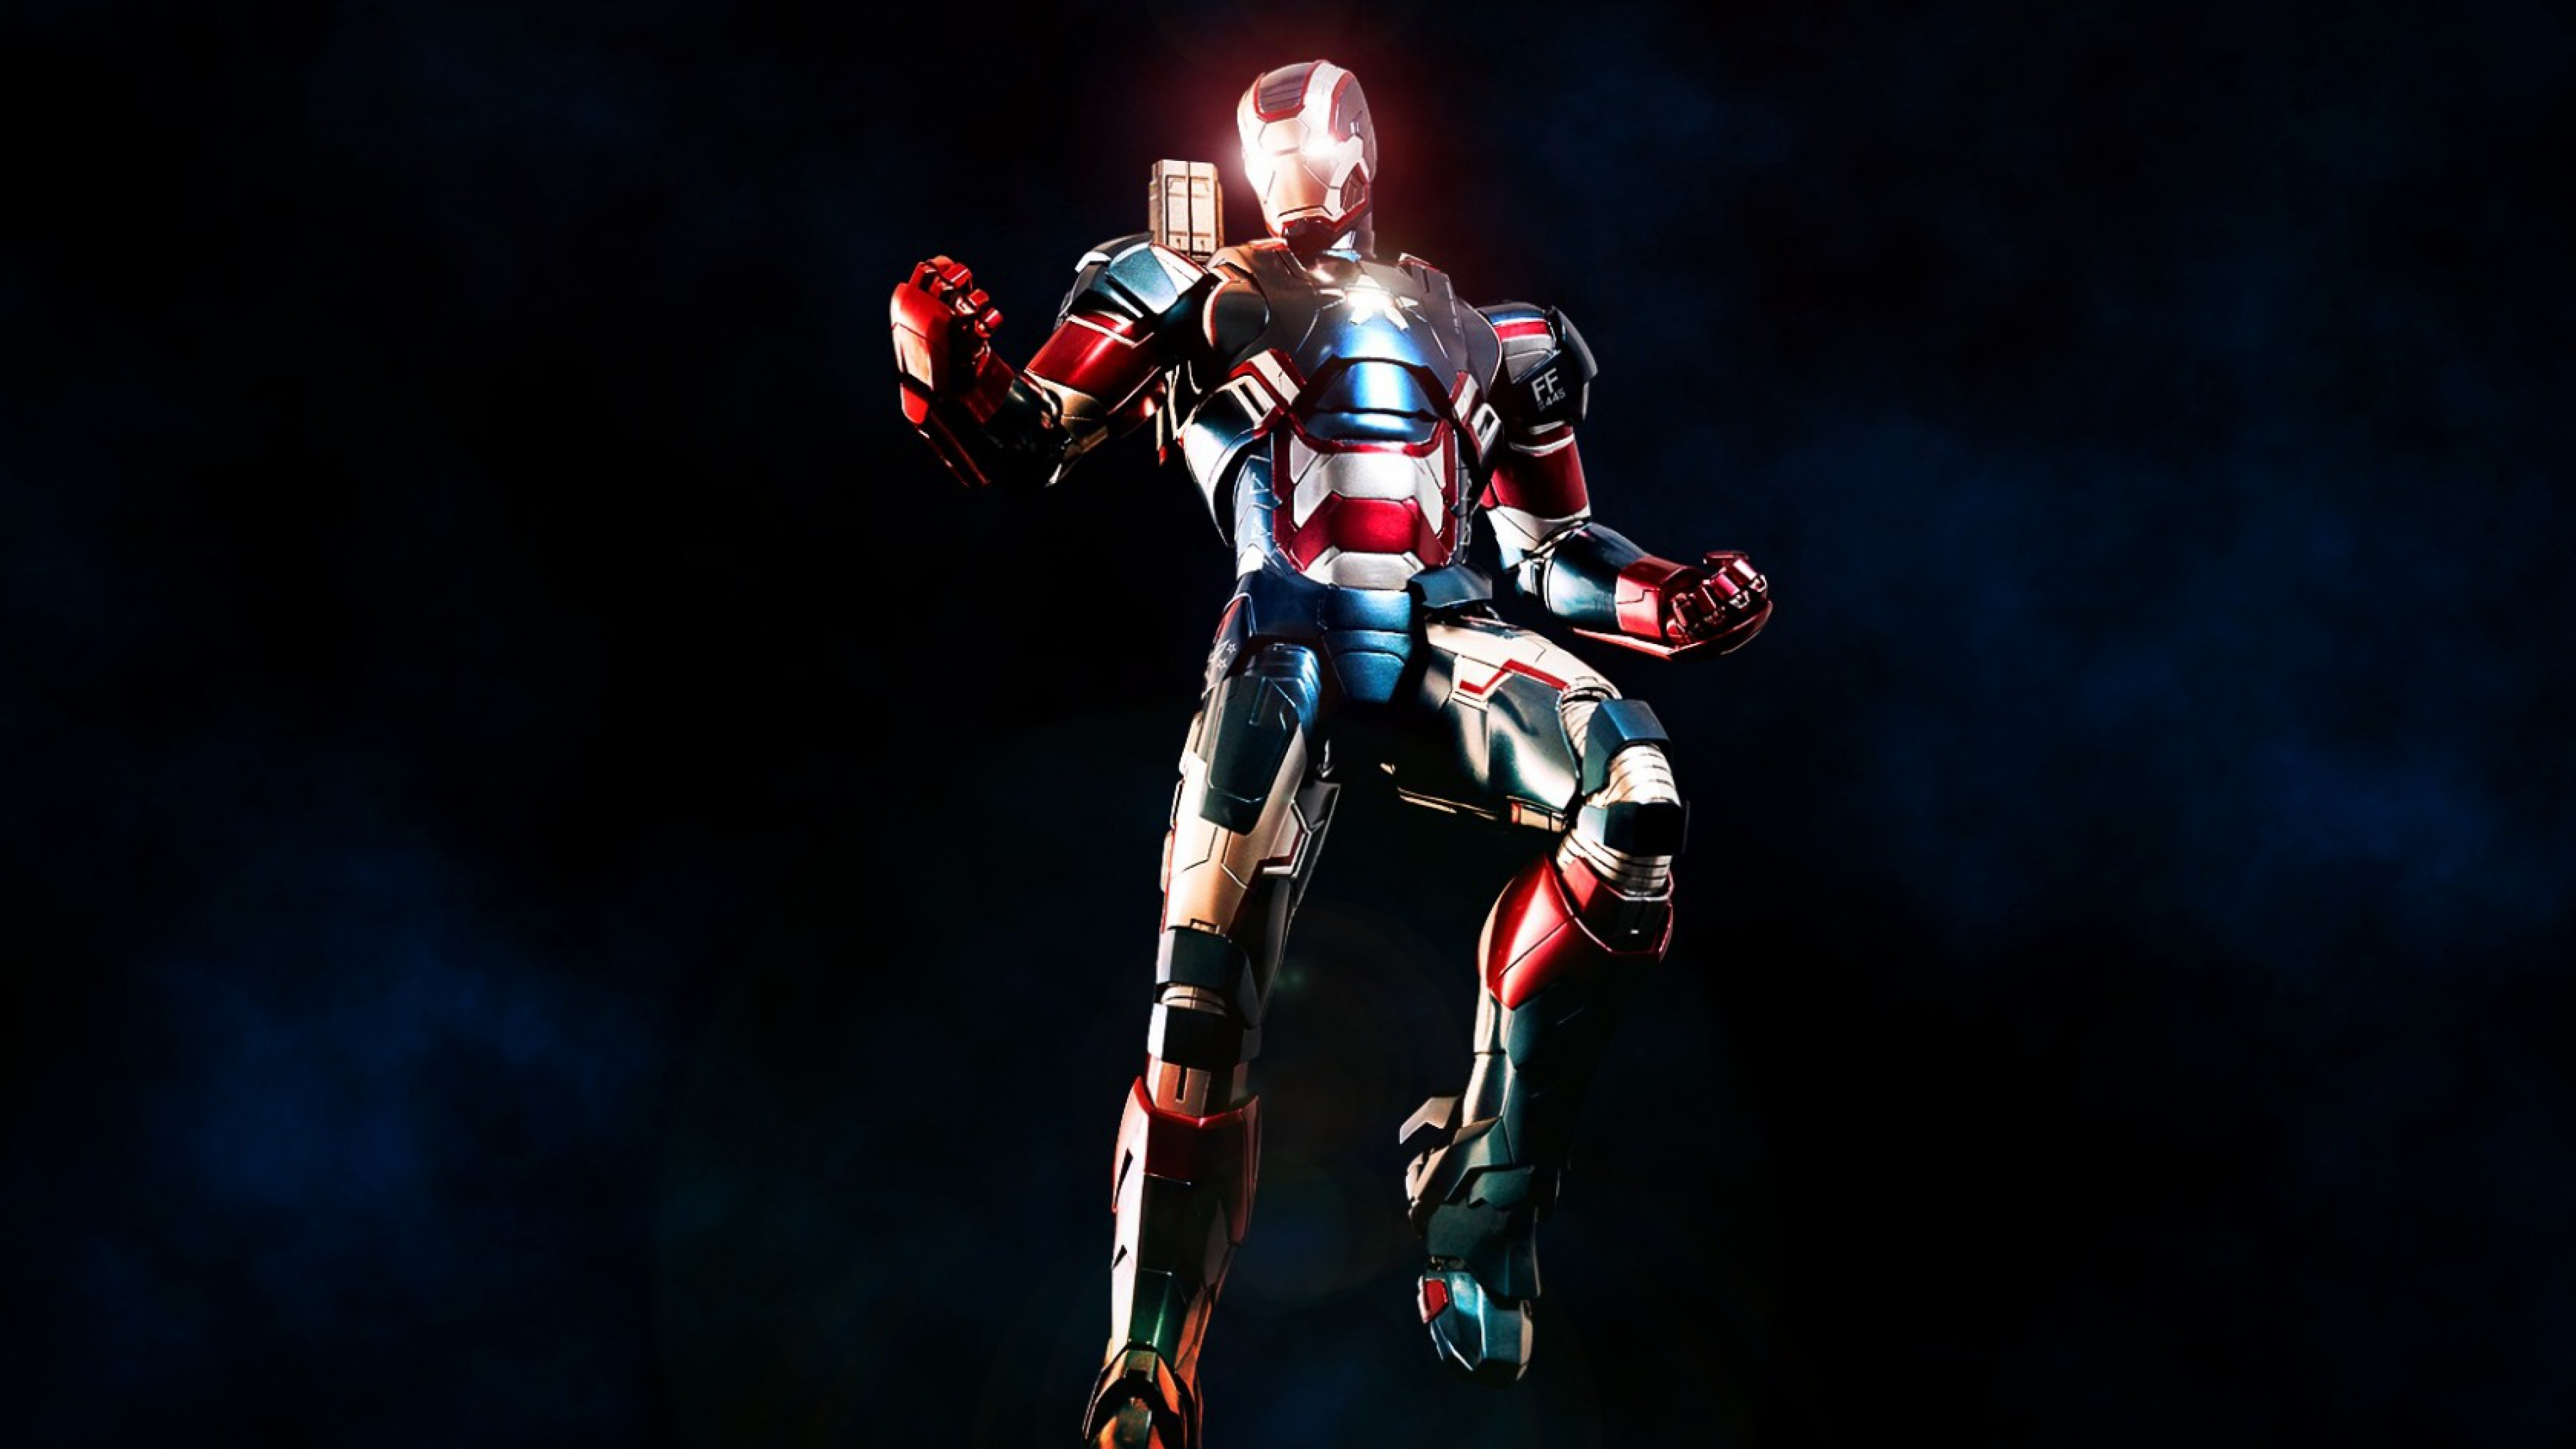 Download Wallpaper 3840x2160 Iron man Iron patriot Marvel comics 4K 3840x2160